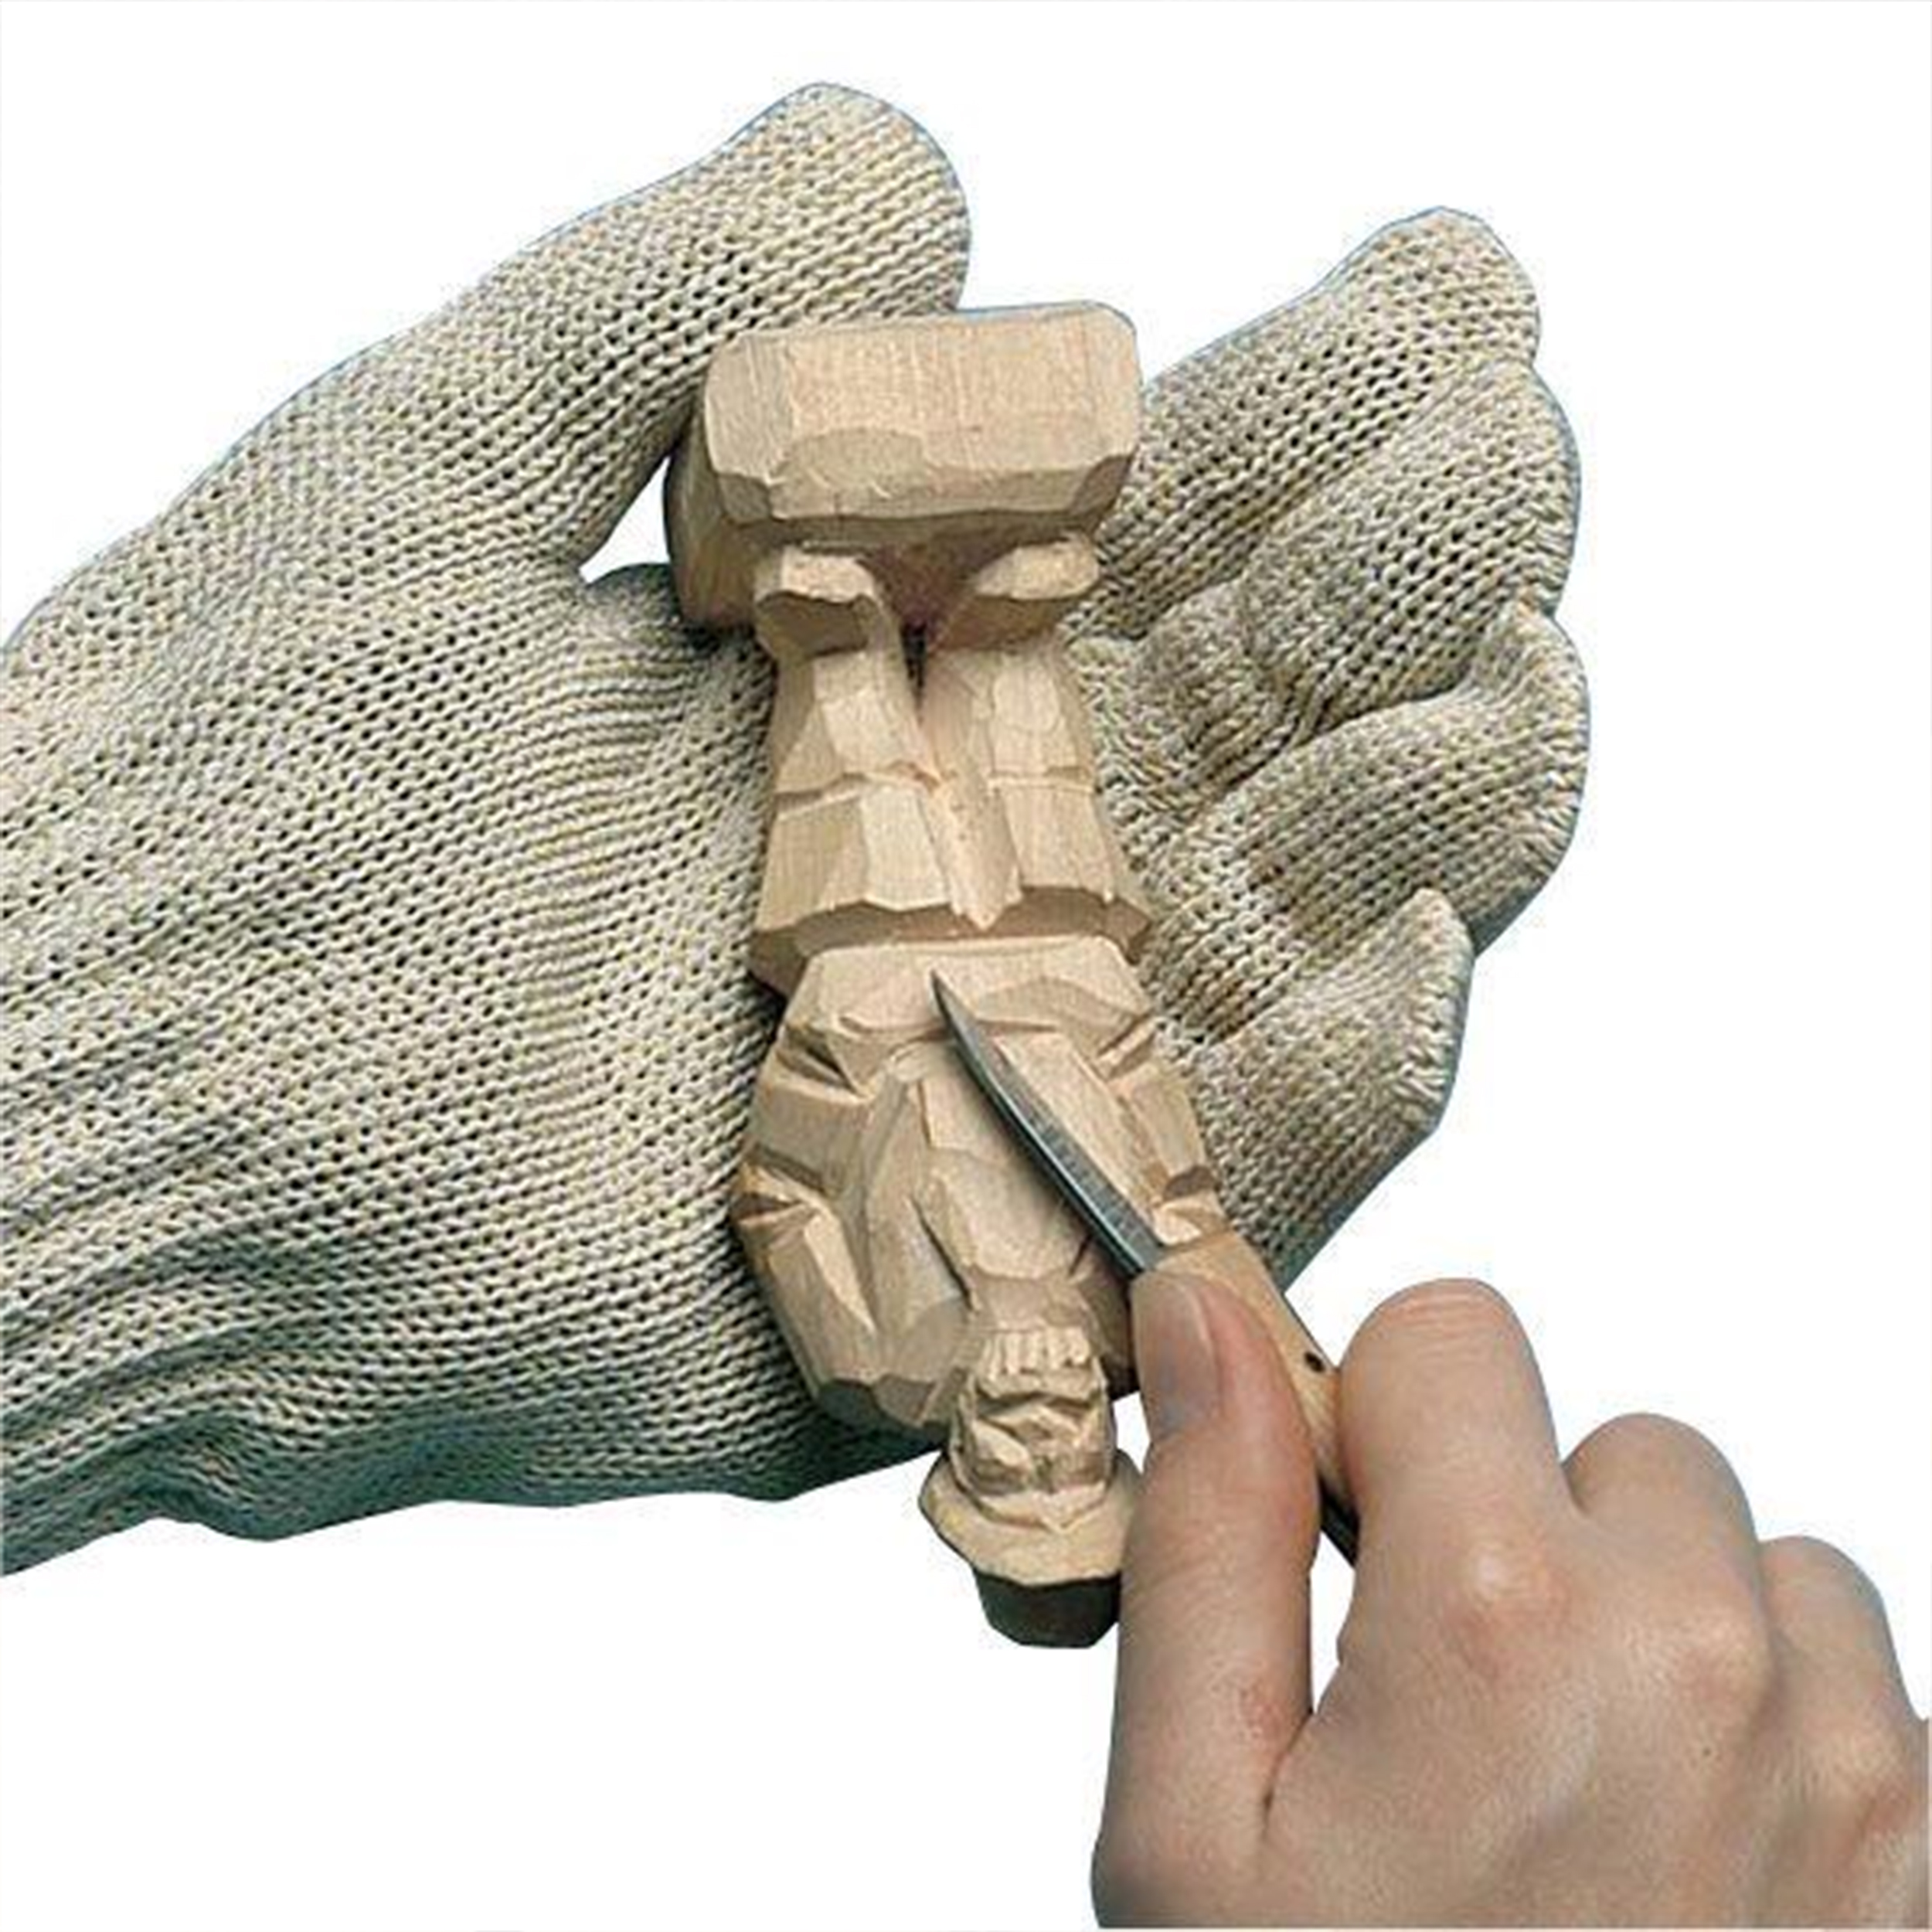 Safety Glove, Extra Extra Small, Size 3-4